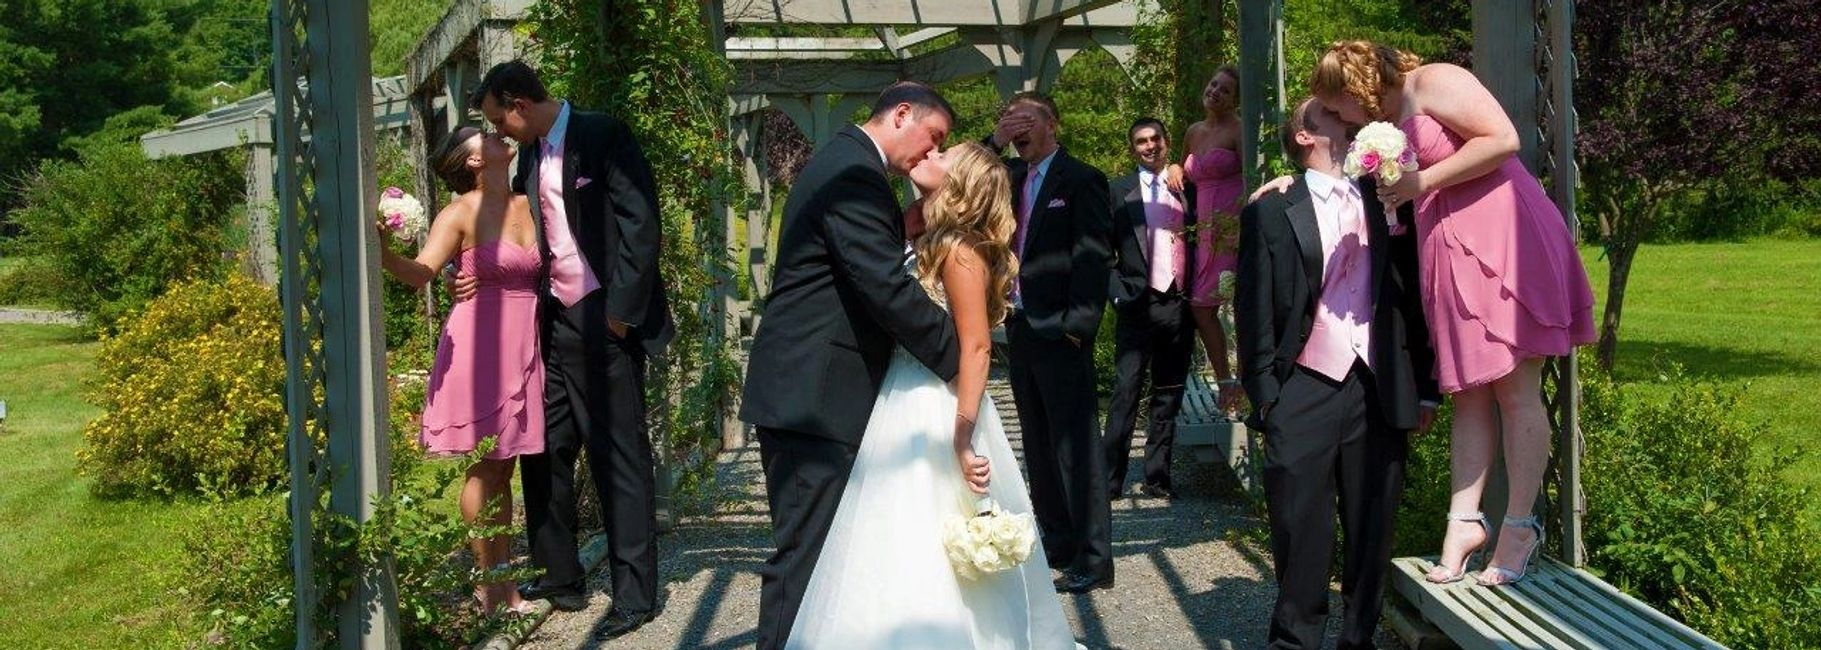 bride and groom kiss after their wedding ceremony performed at the vineyard